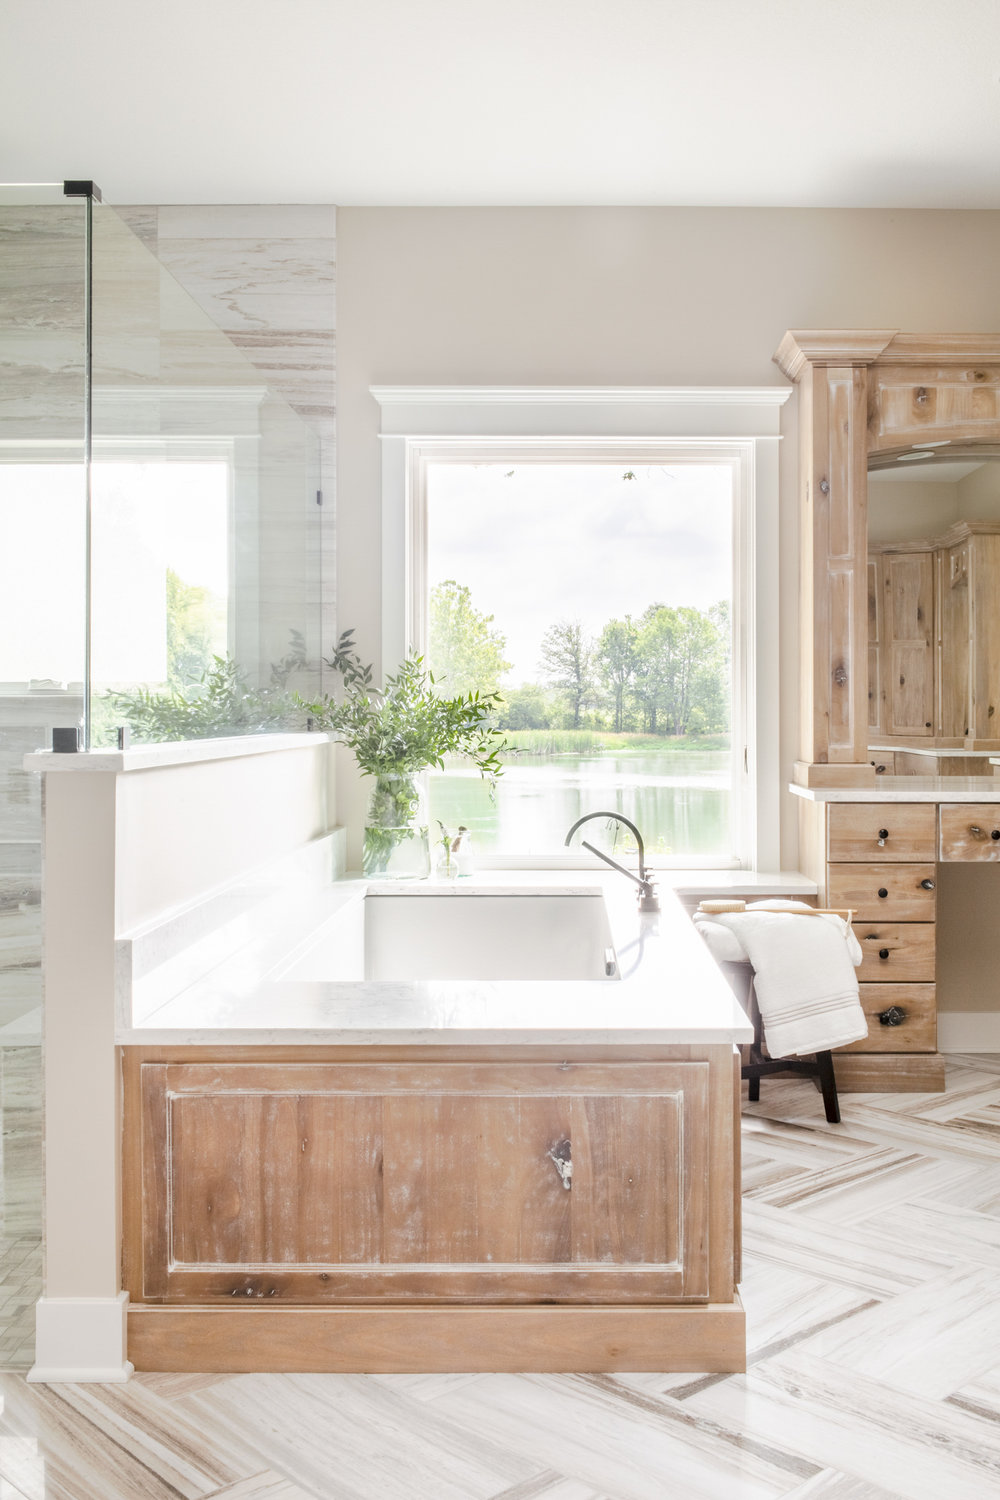 before-and-after-home-reveal-scout-and-nimble-lake-view-luxe-country-interior-design-9.jpg